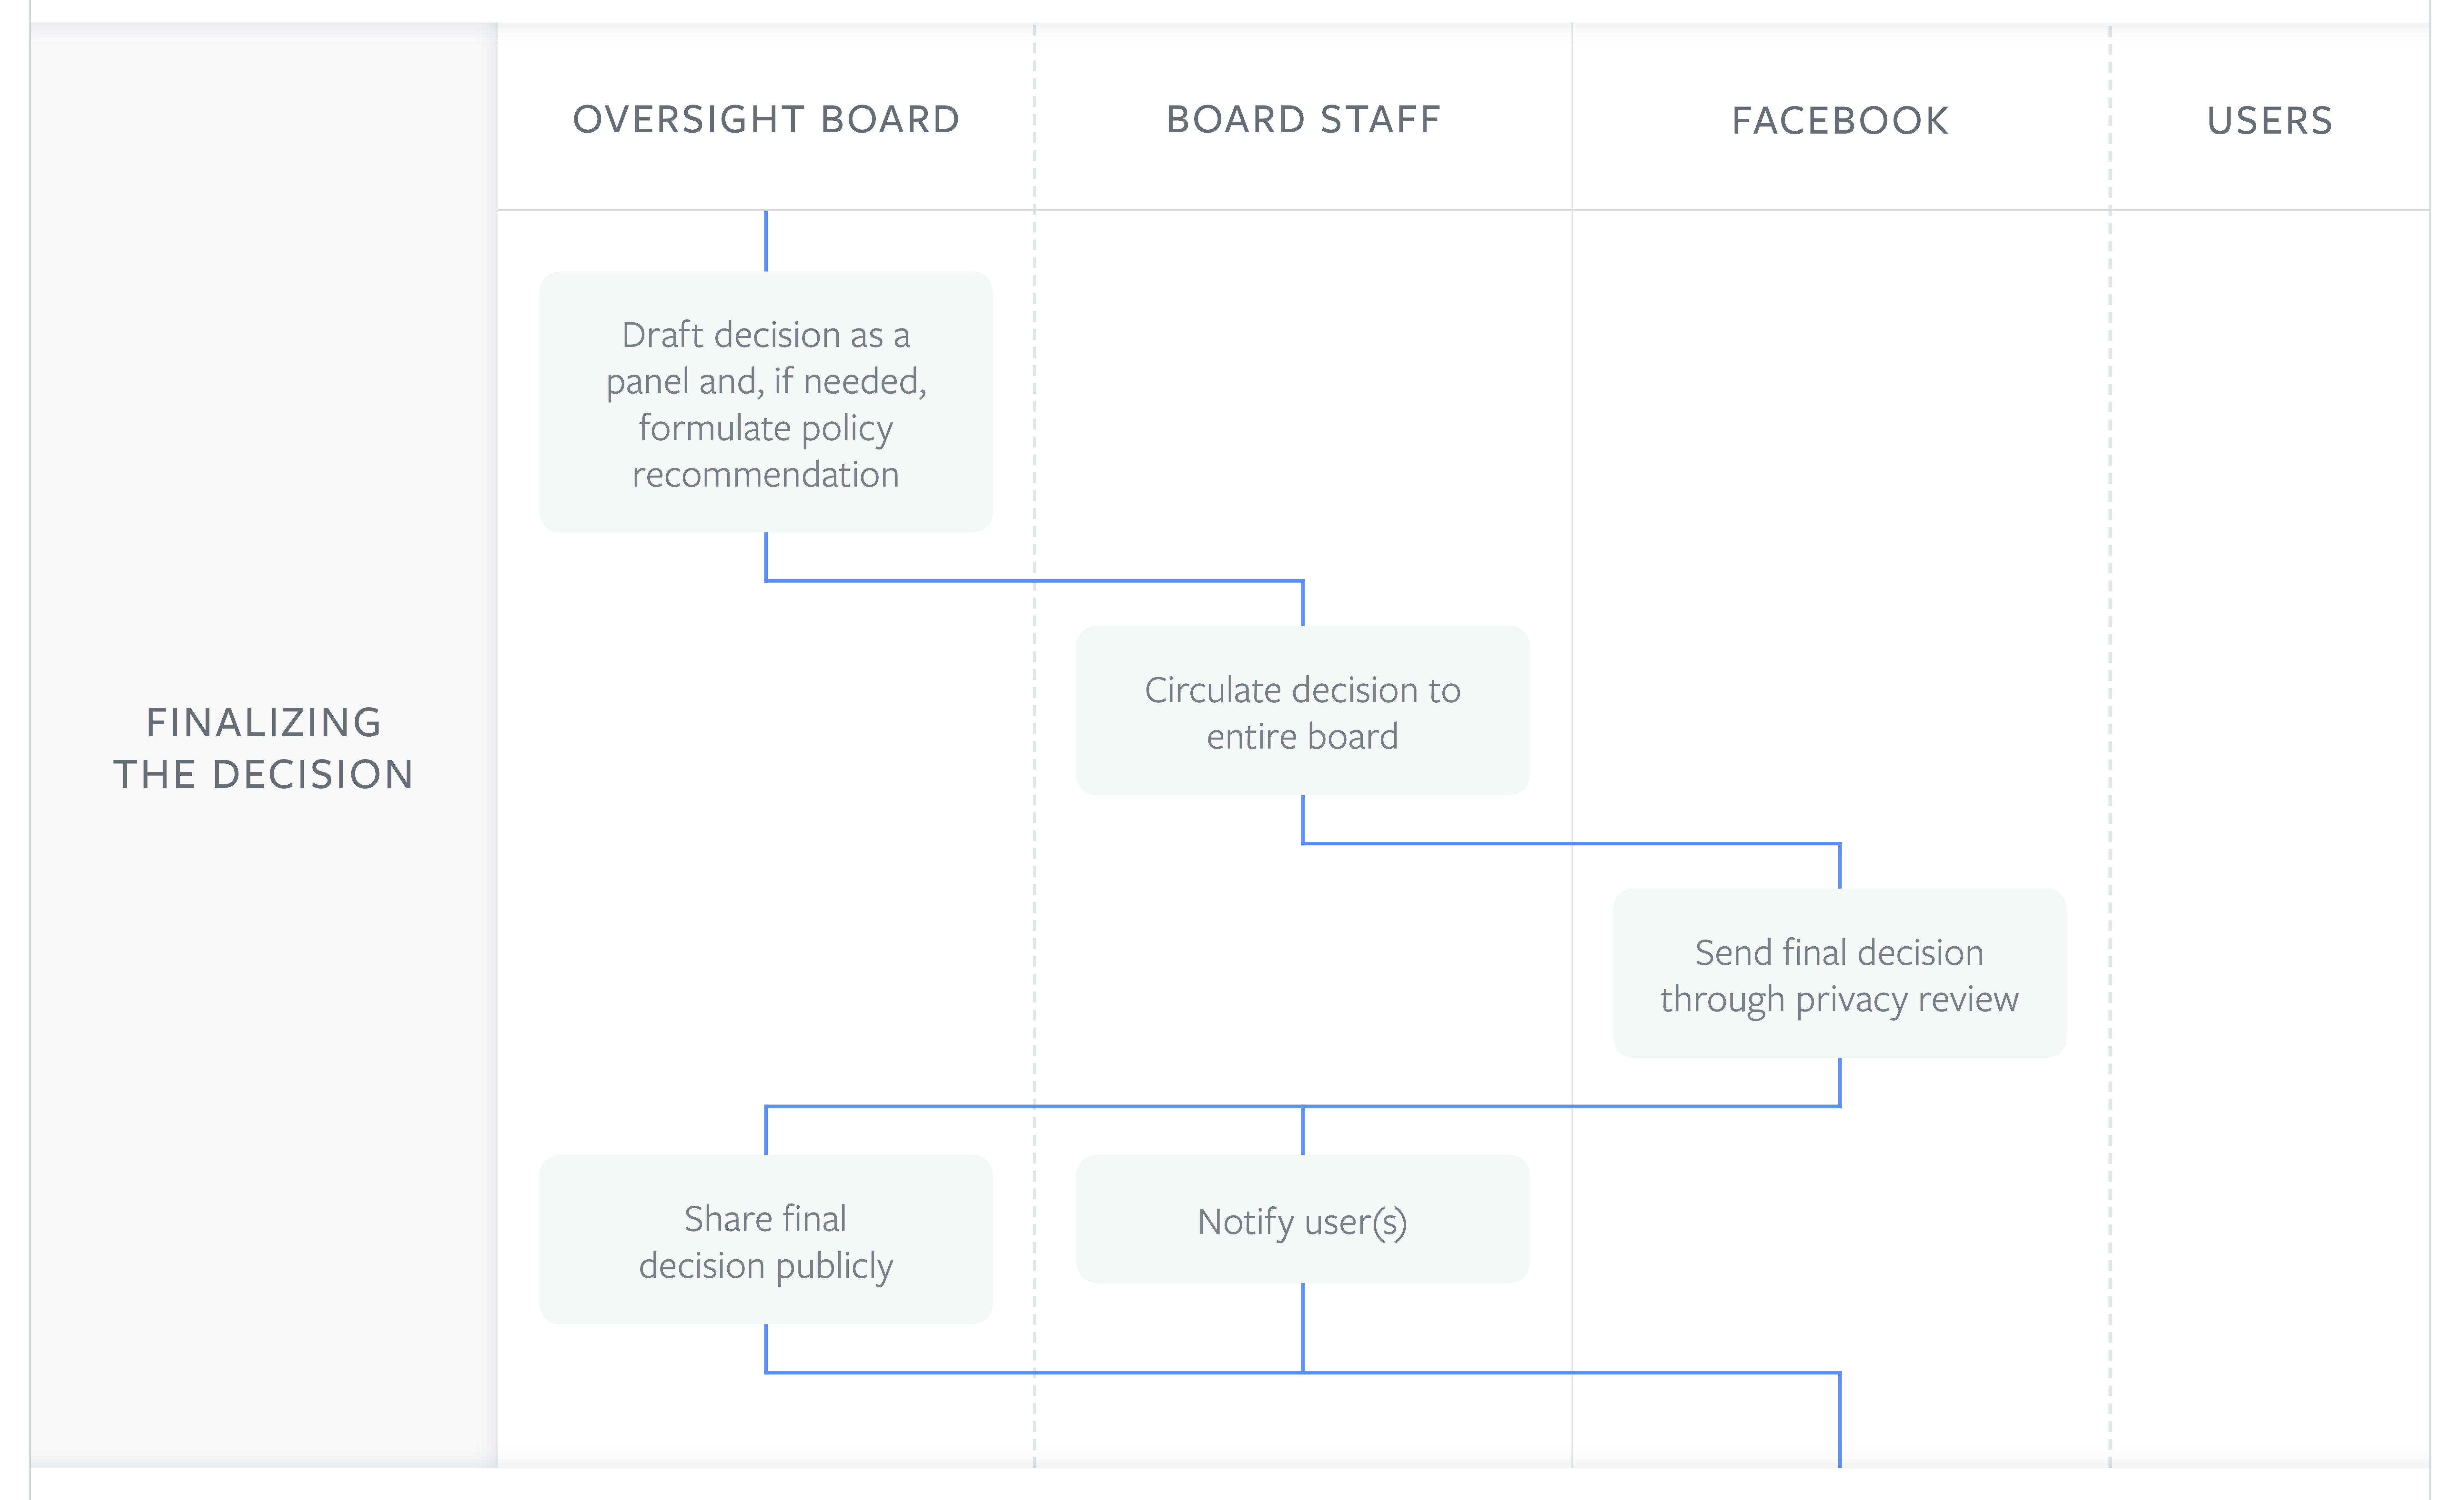 Facebook Oversight Board Decisions